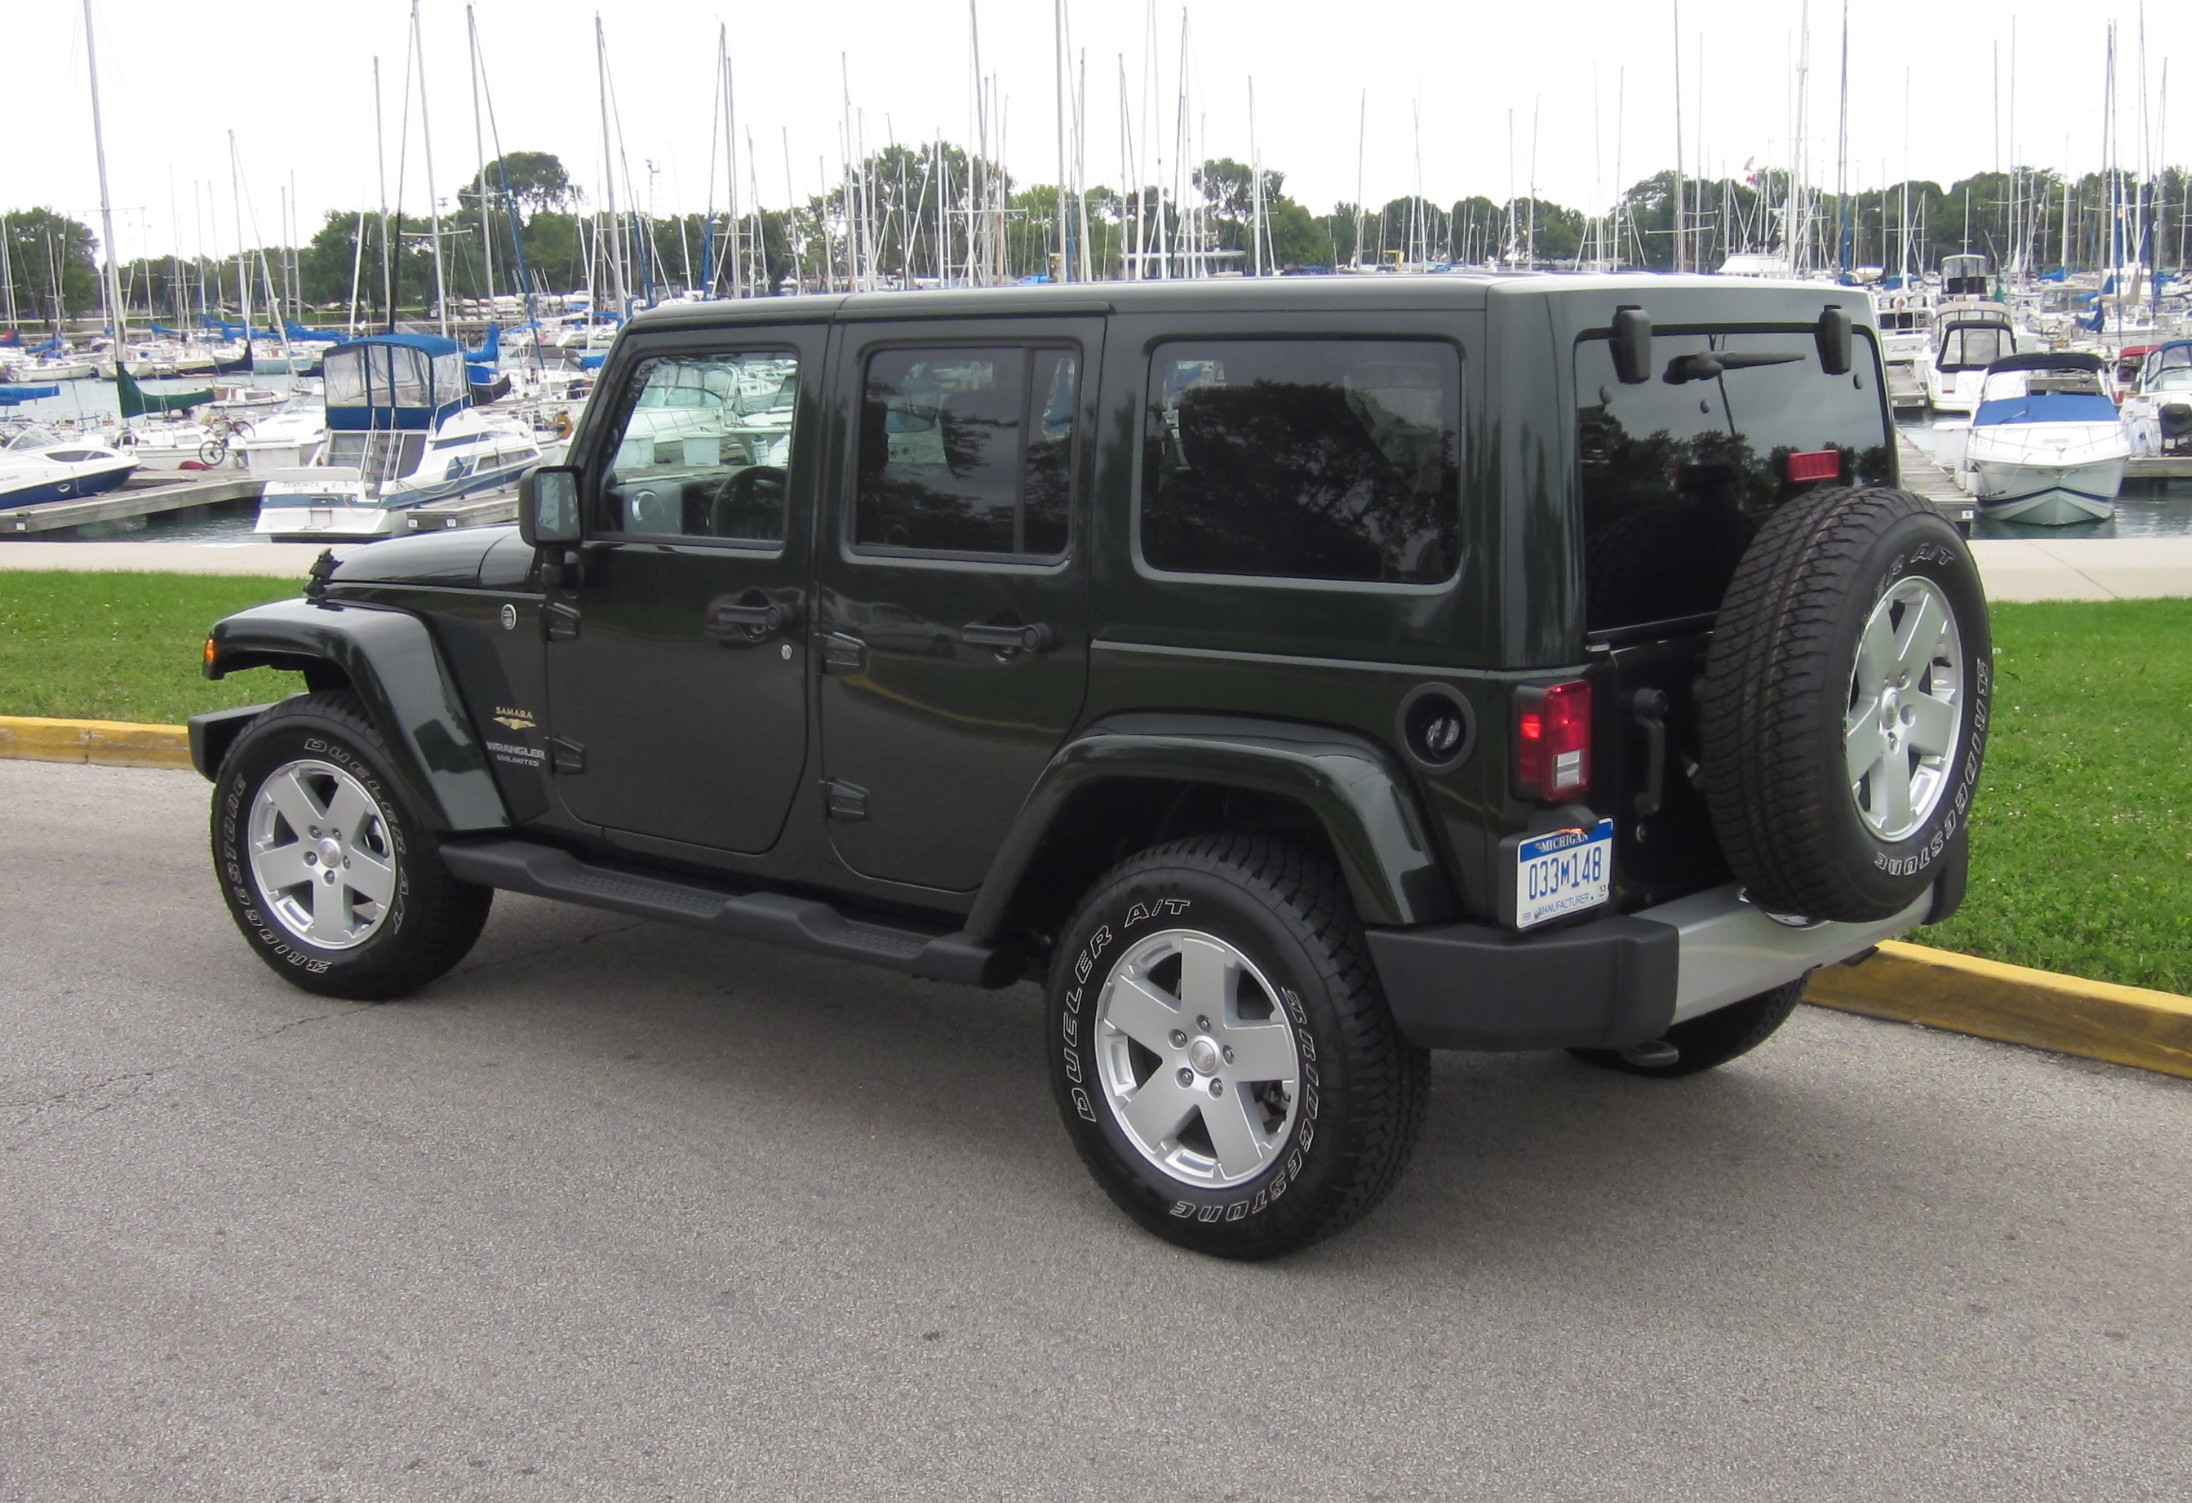 2012 Jeep Wrangler Unlimited(select To View Enlarged Photo)